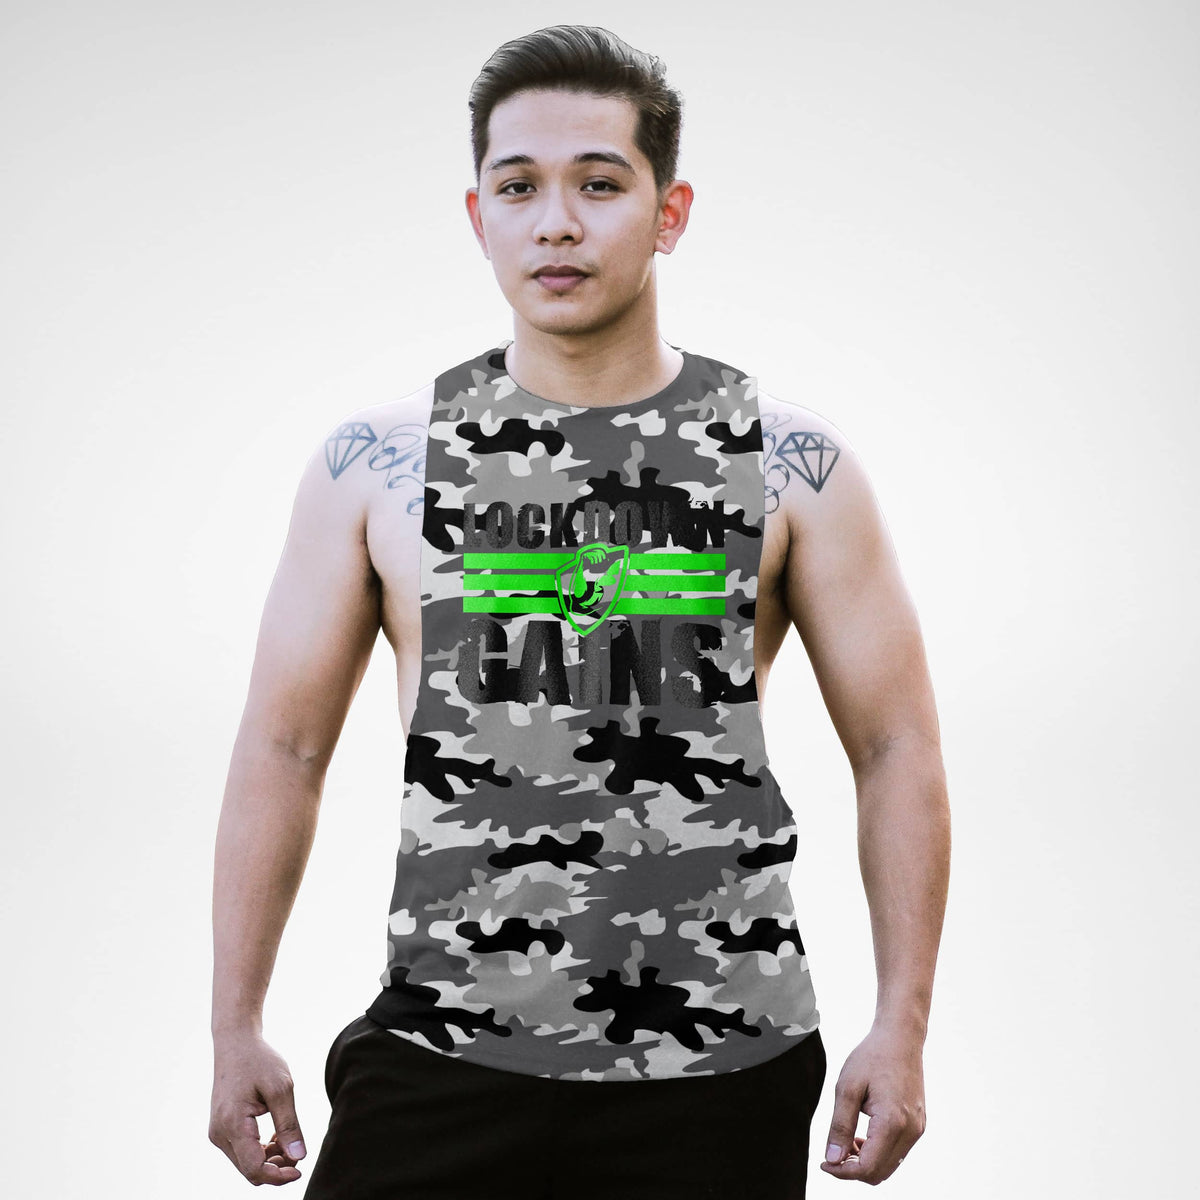 Lockdown Gains Openside Tank Top